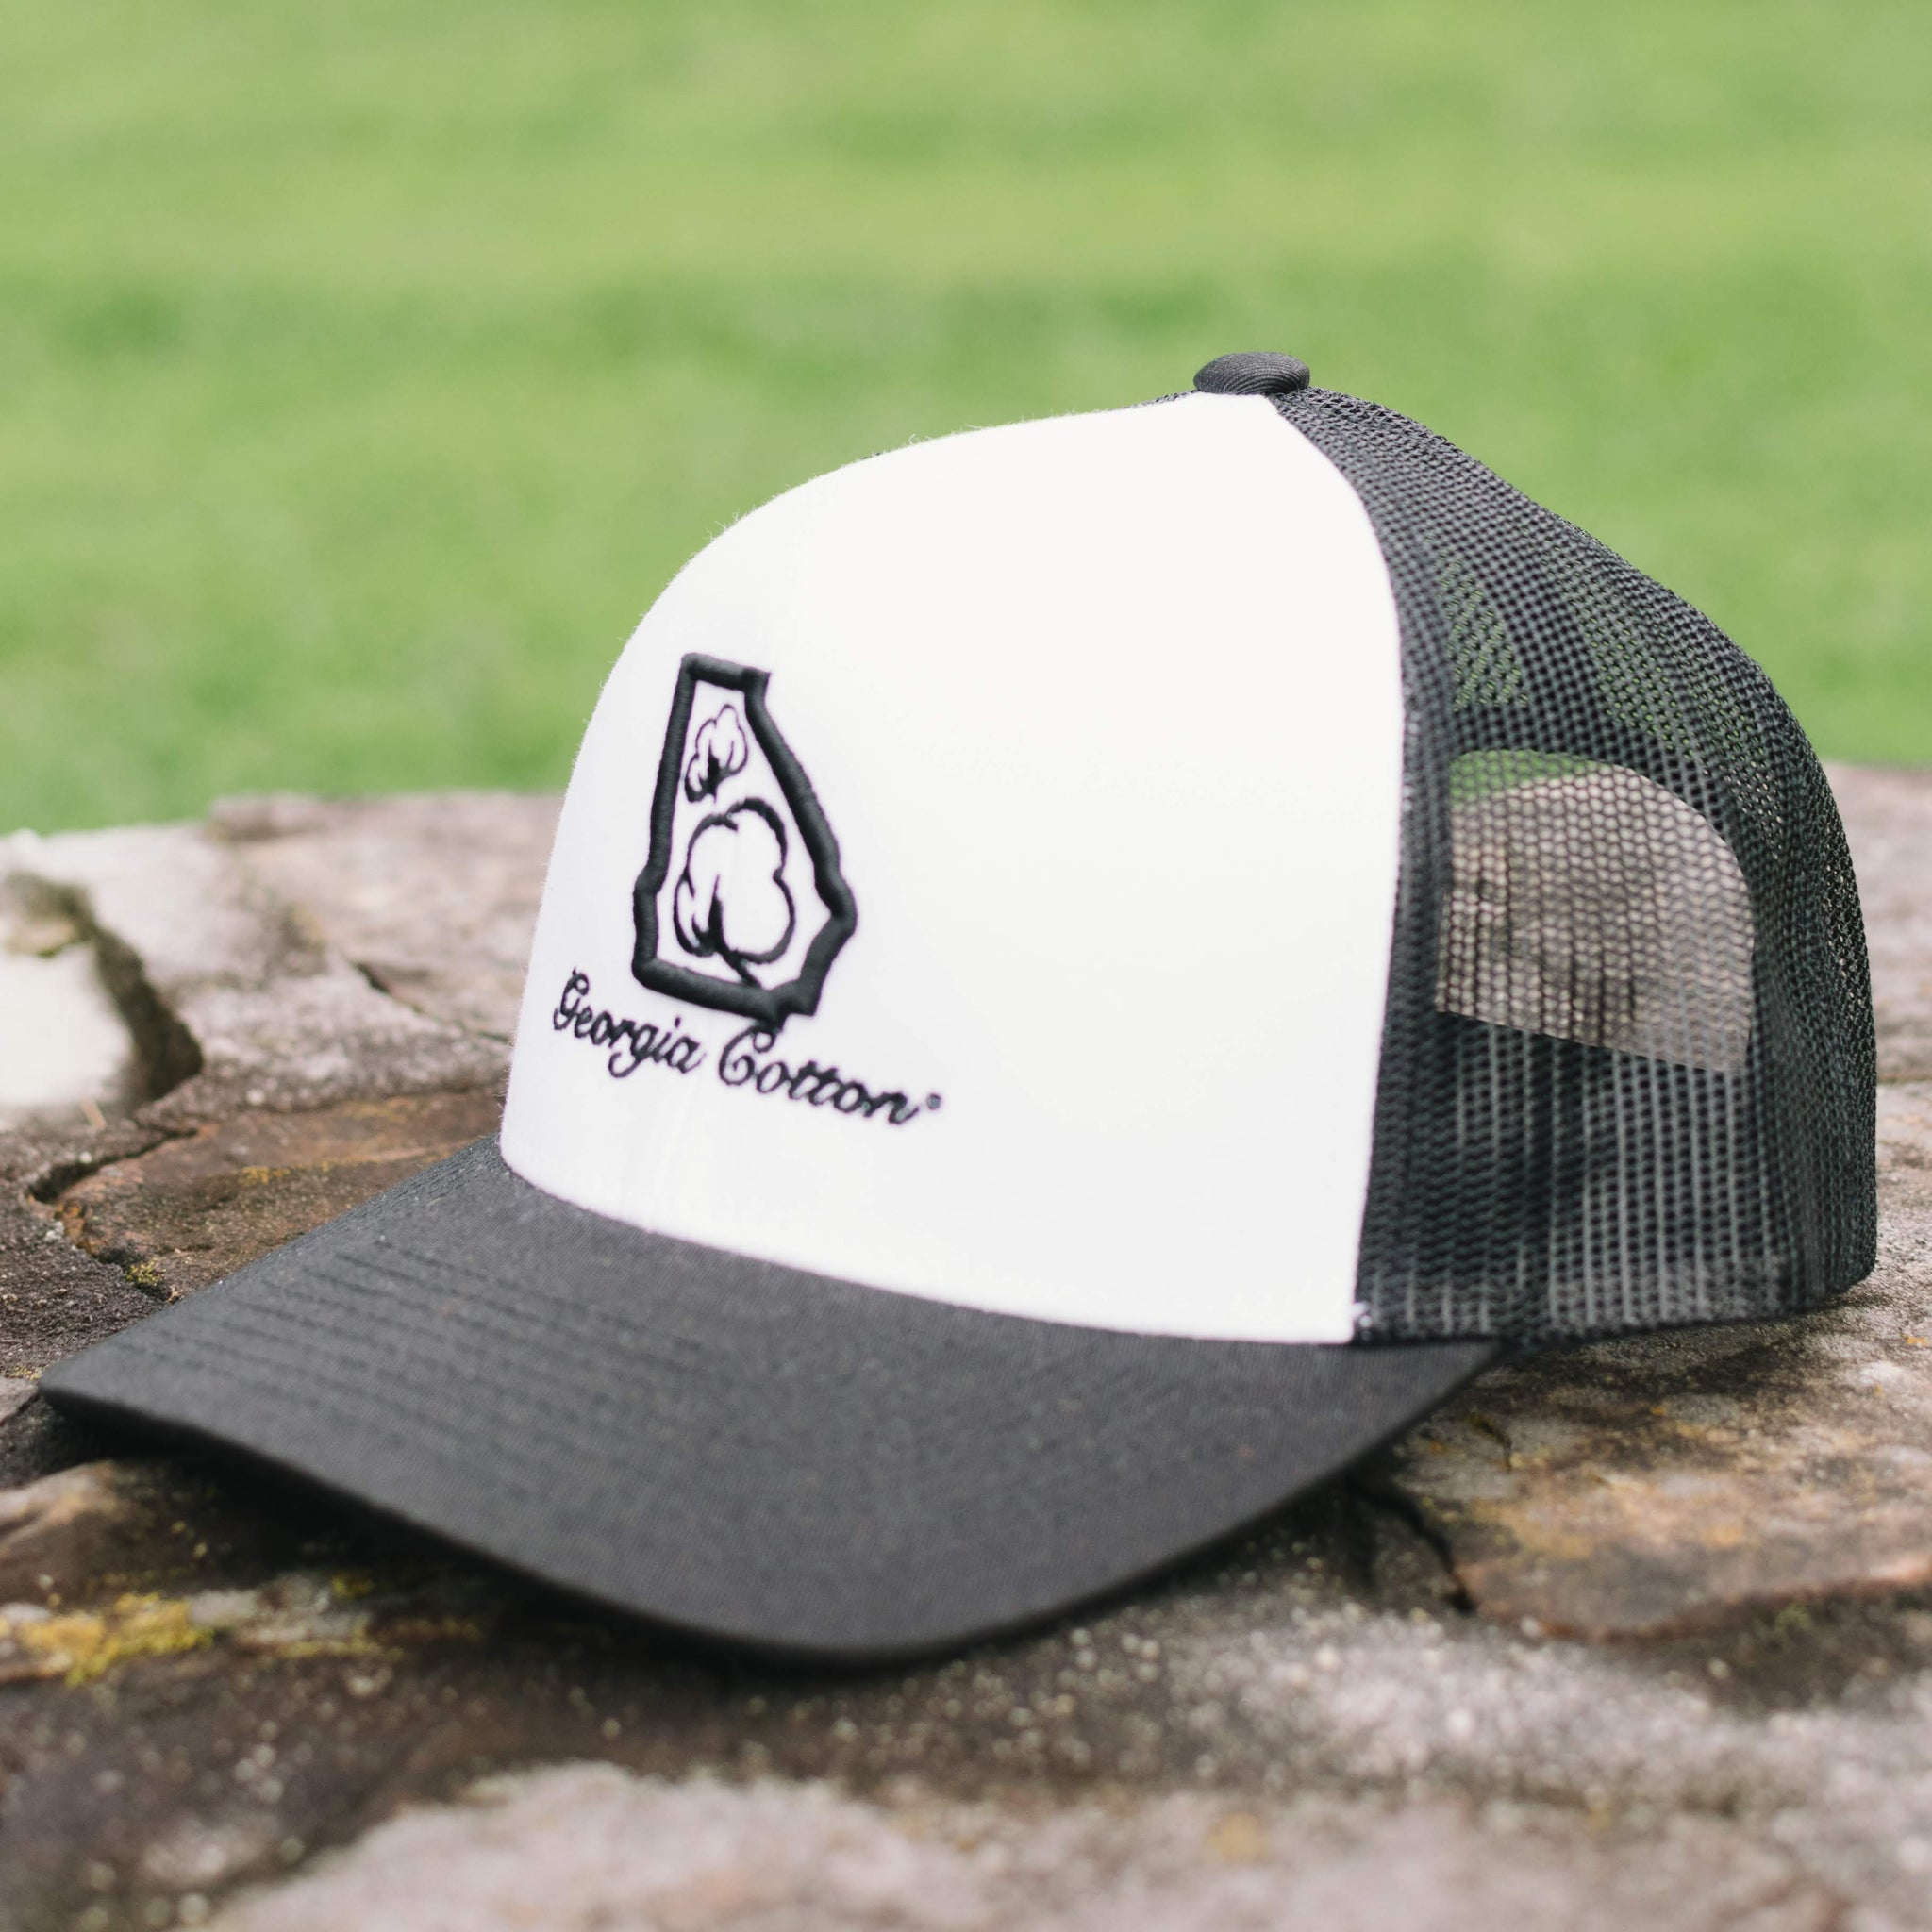 56abe9c09ae Georgia Cotton Mesh Back Hat in White and Black – Southern Cotton ...